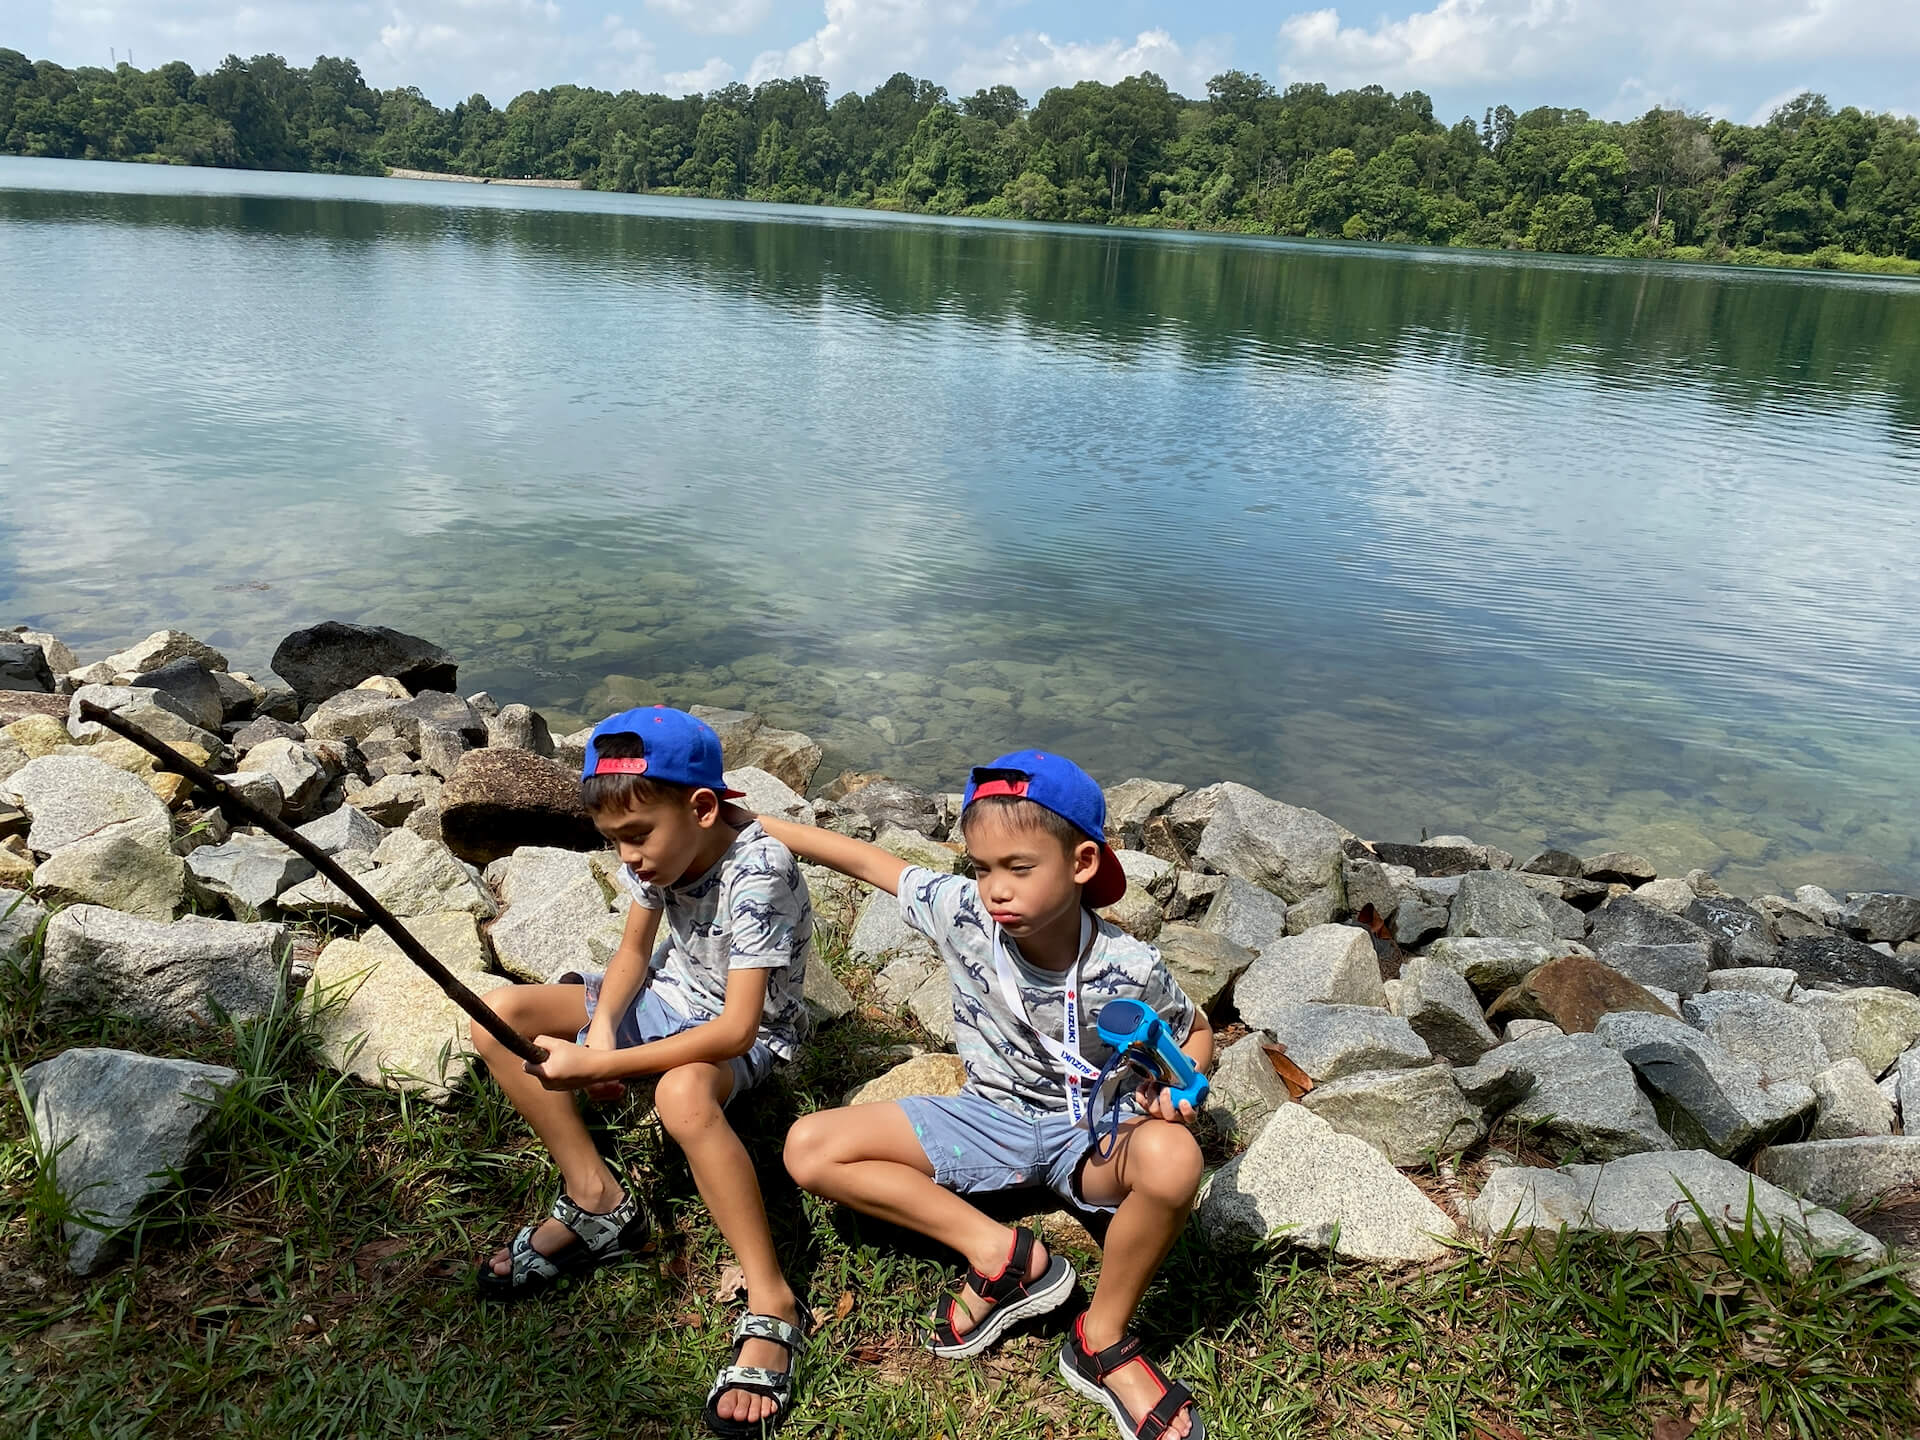 SCHOOL HOLIDAY PLANS: Things to do with the family